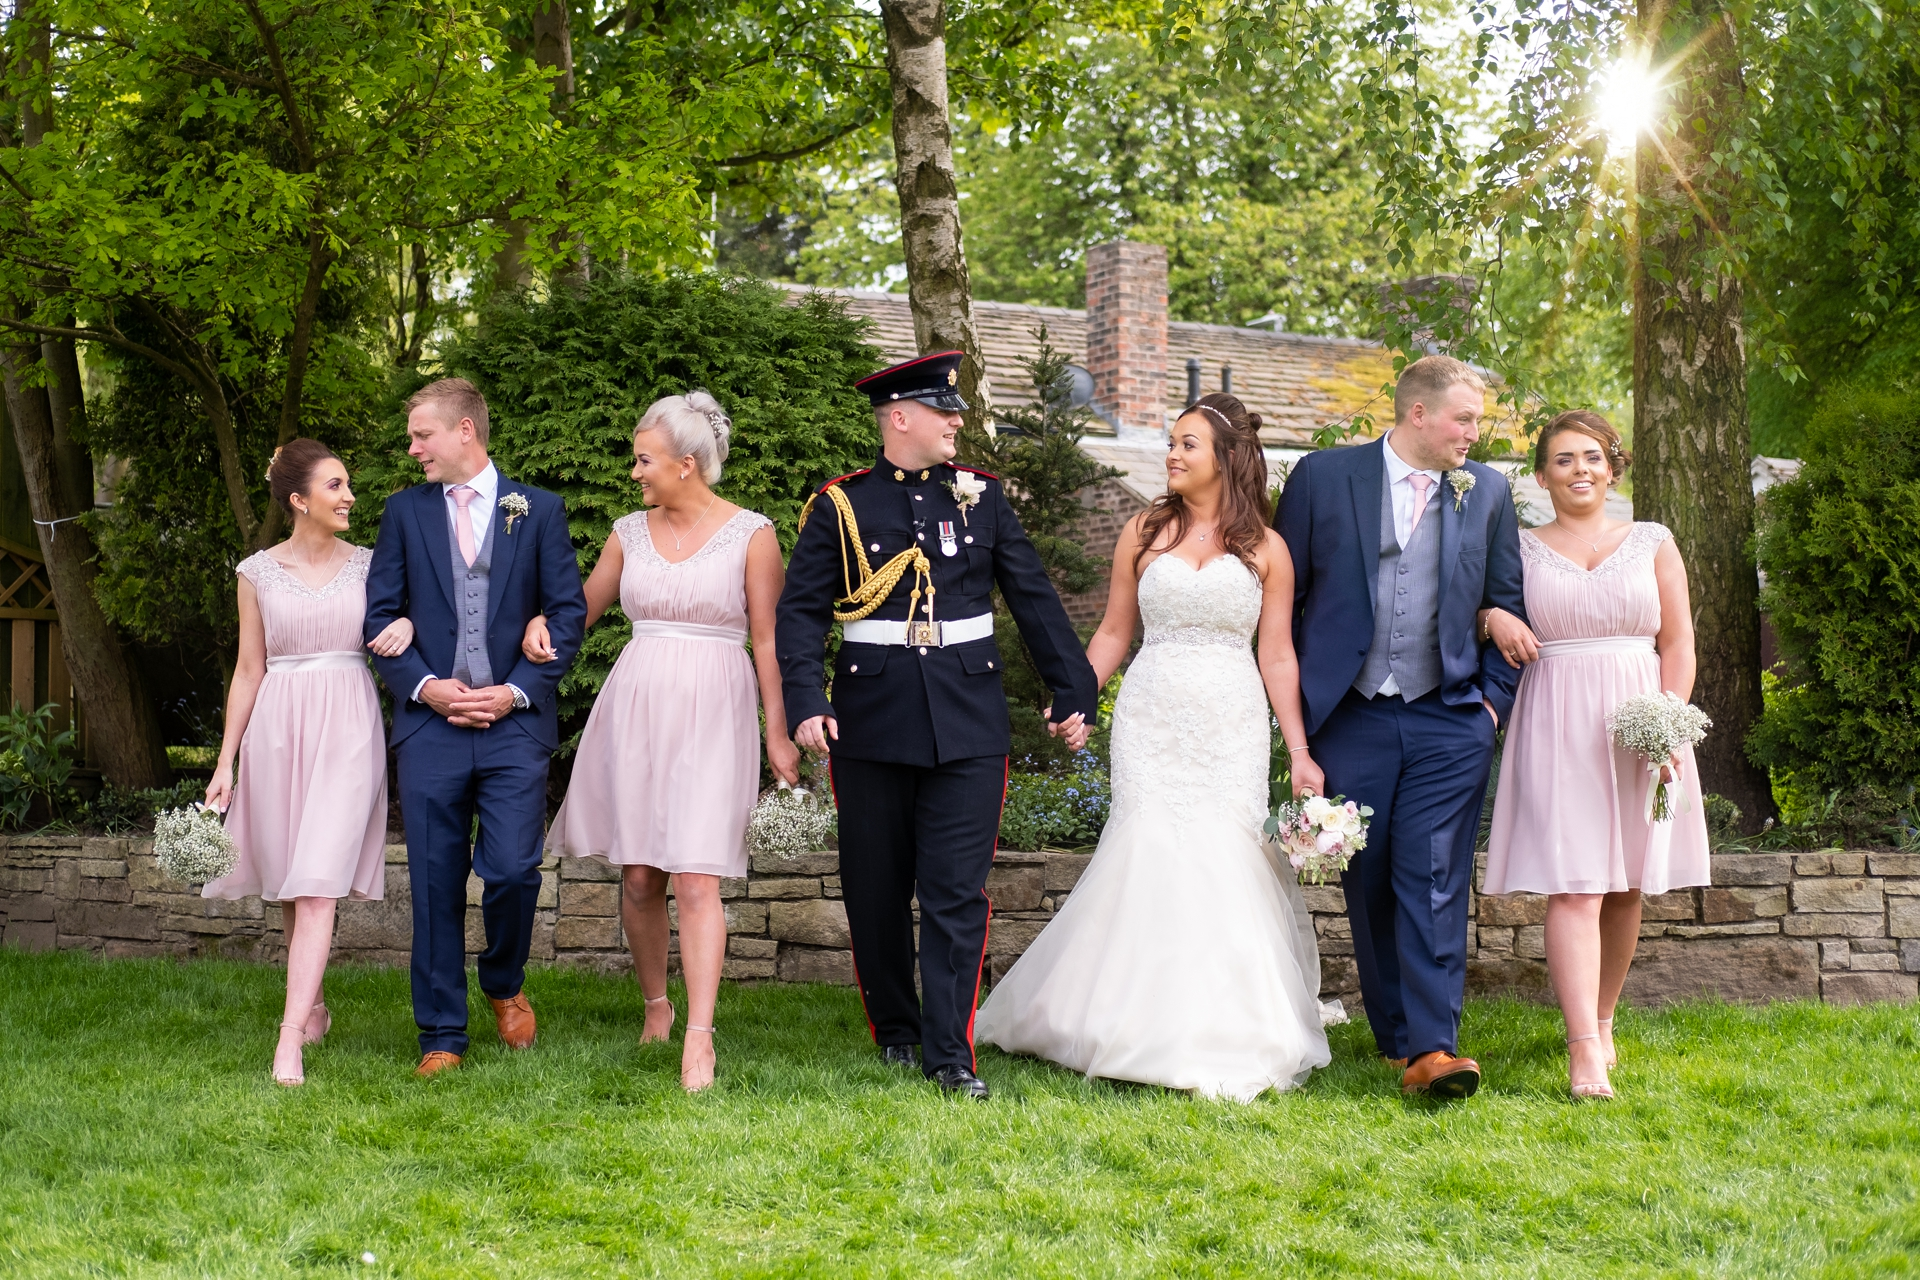 wedding the plough endon cheshire photographer photo 23.jpg